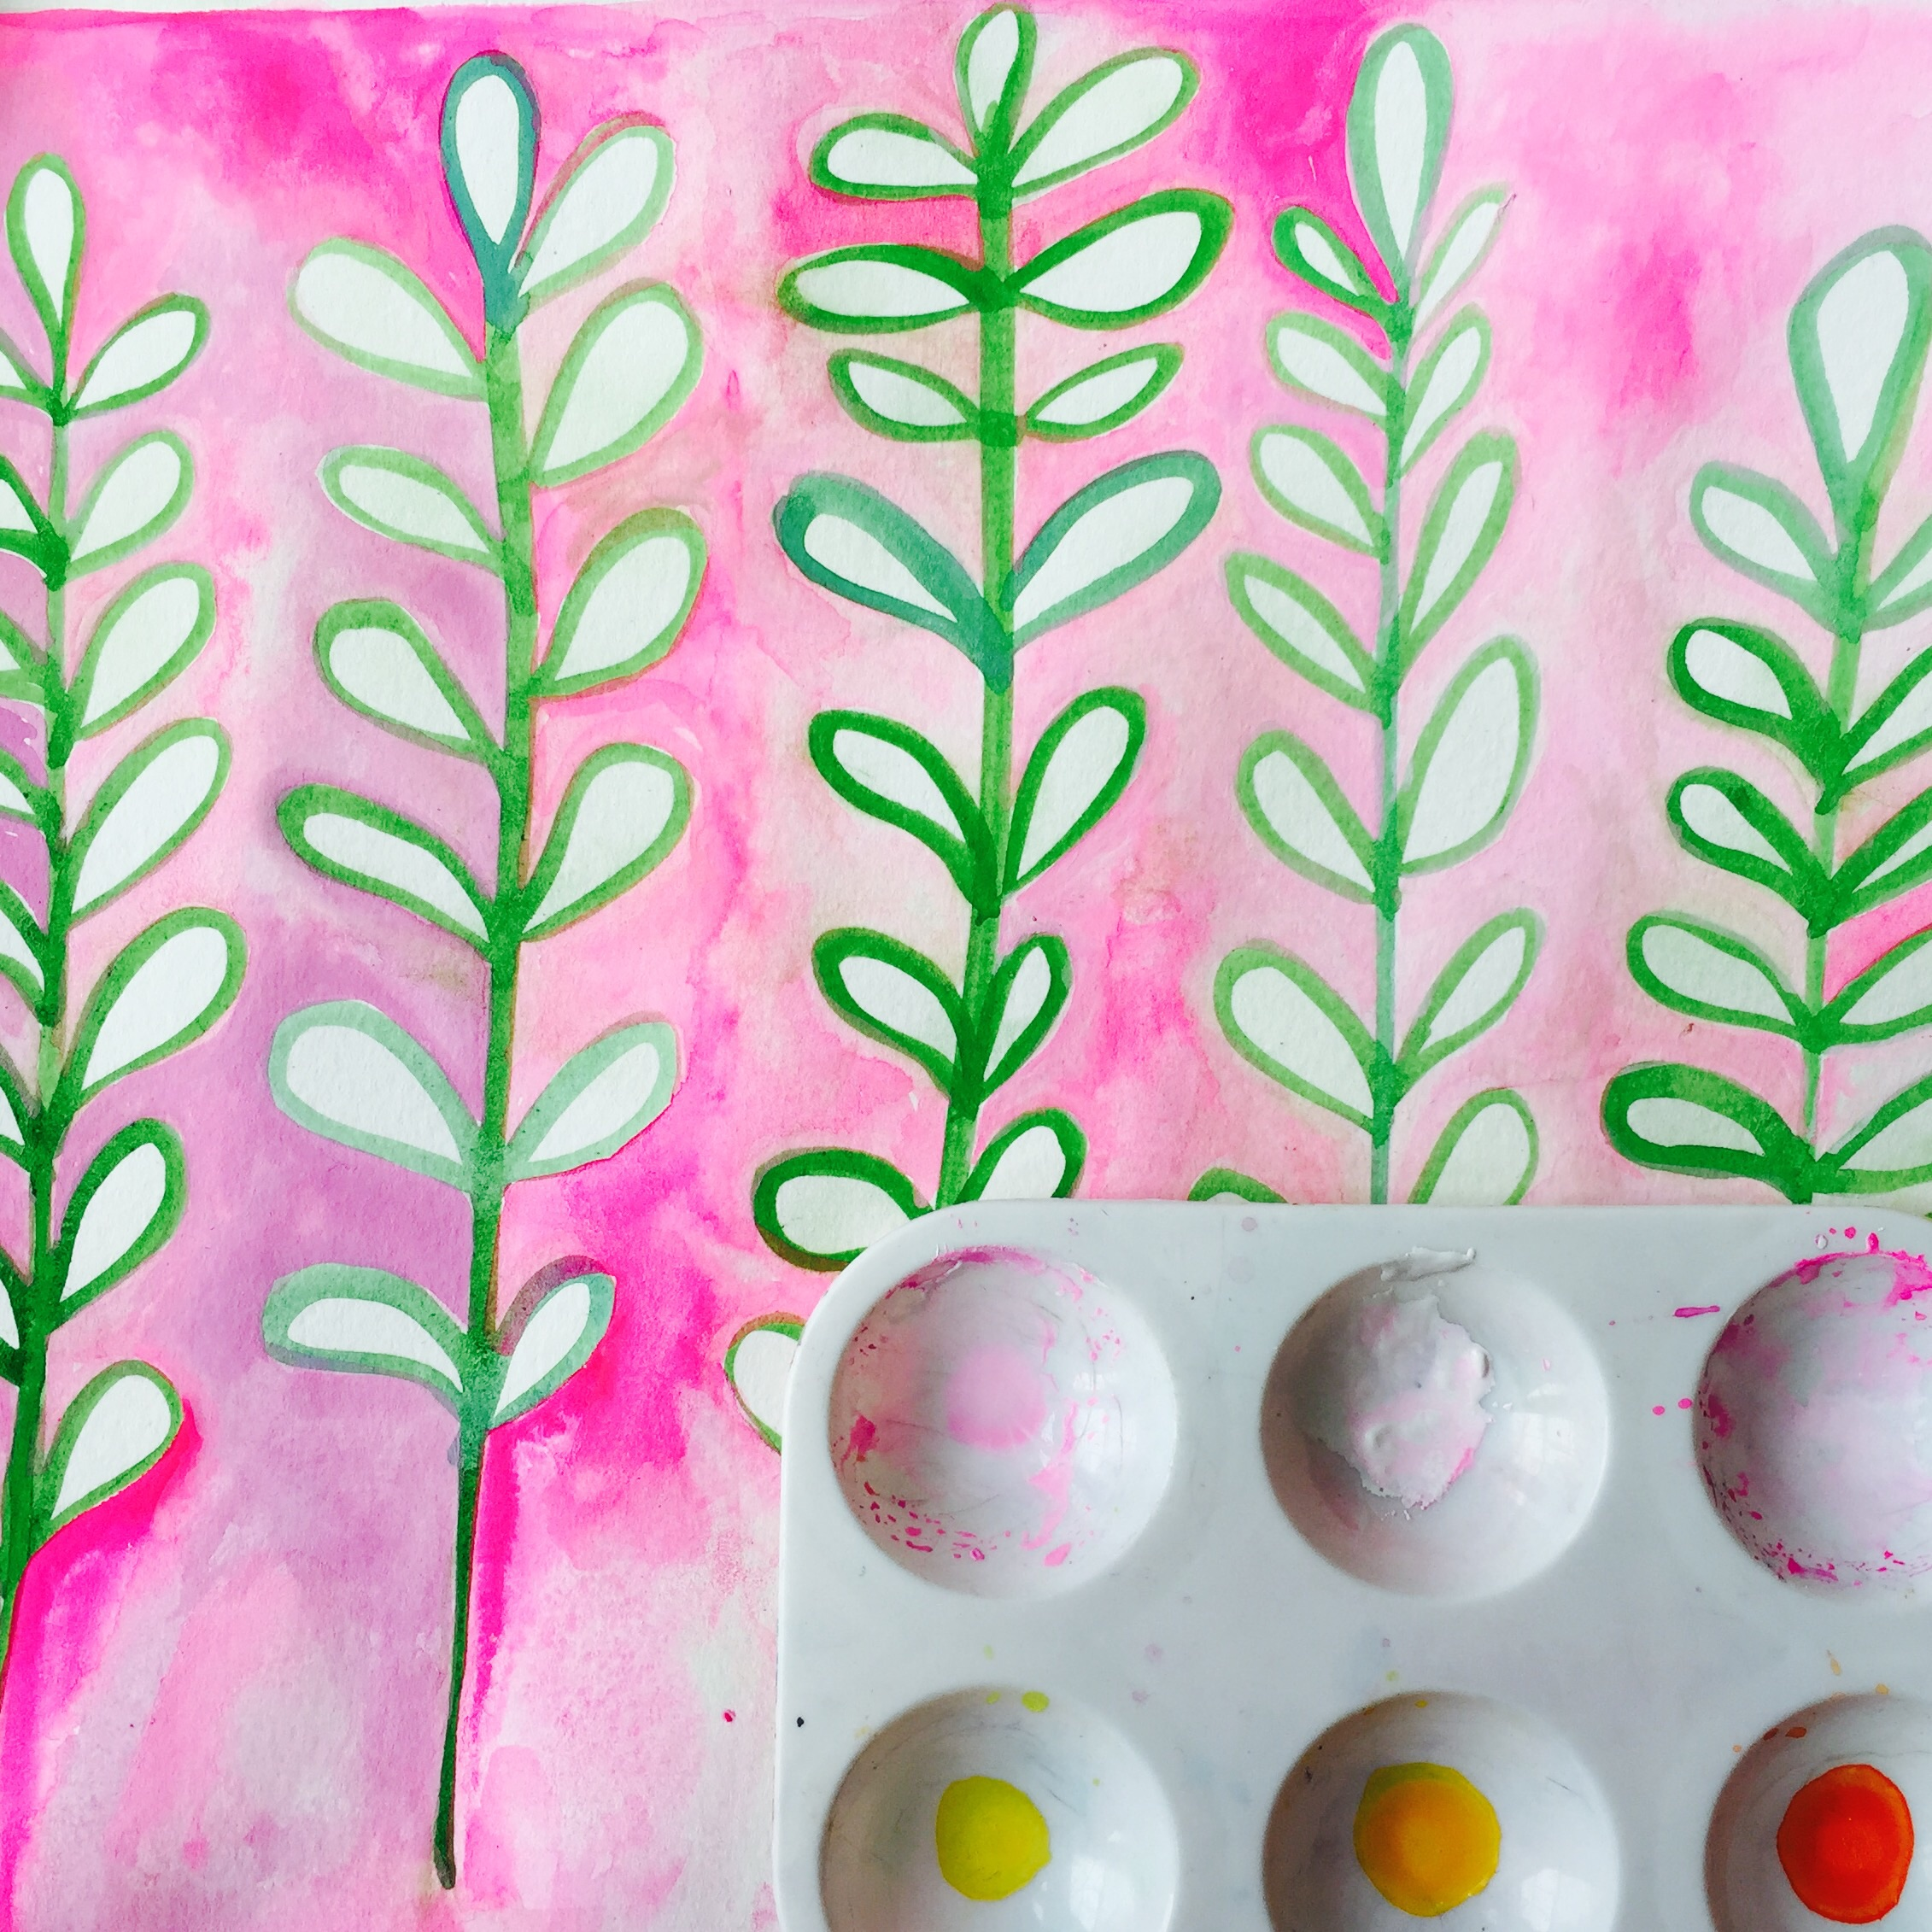 painted green leaves first with gouache then the pink background